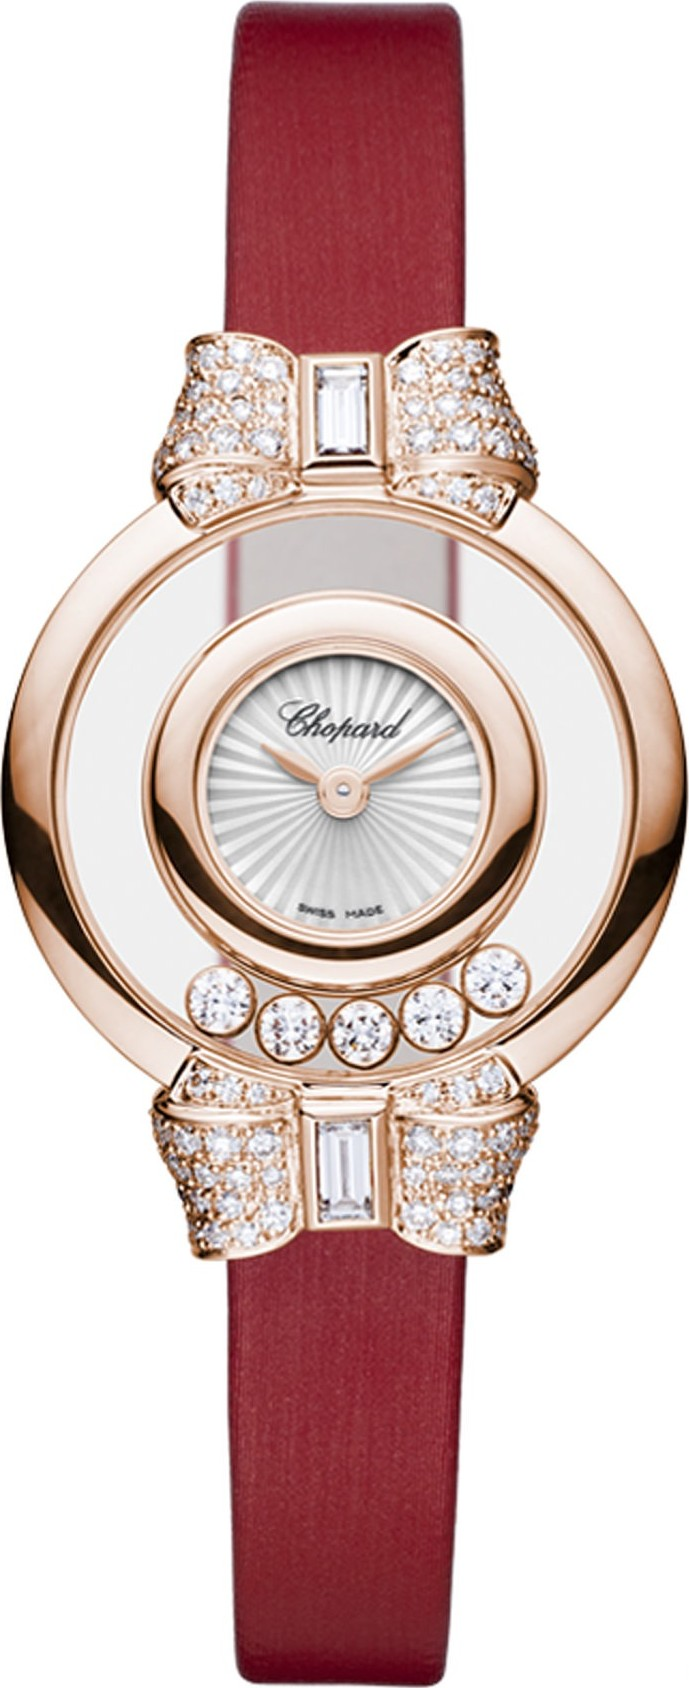 Chopard Happy Diamonds Icons Watch 25.8mm